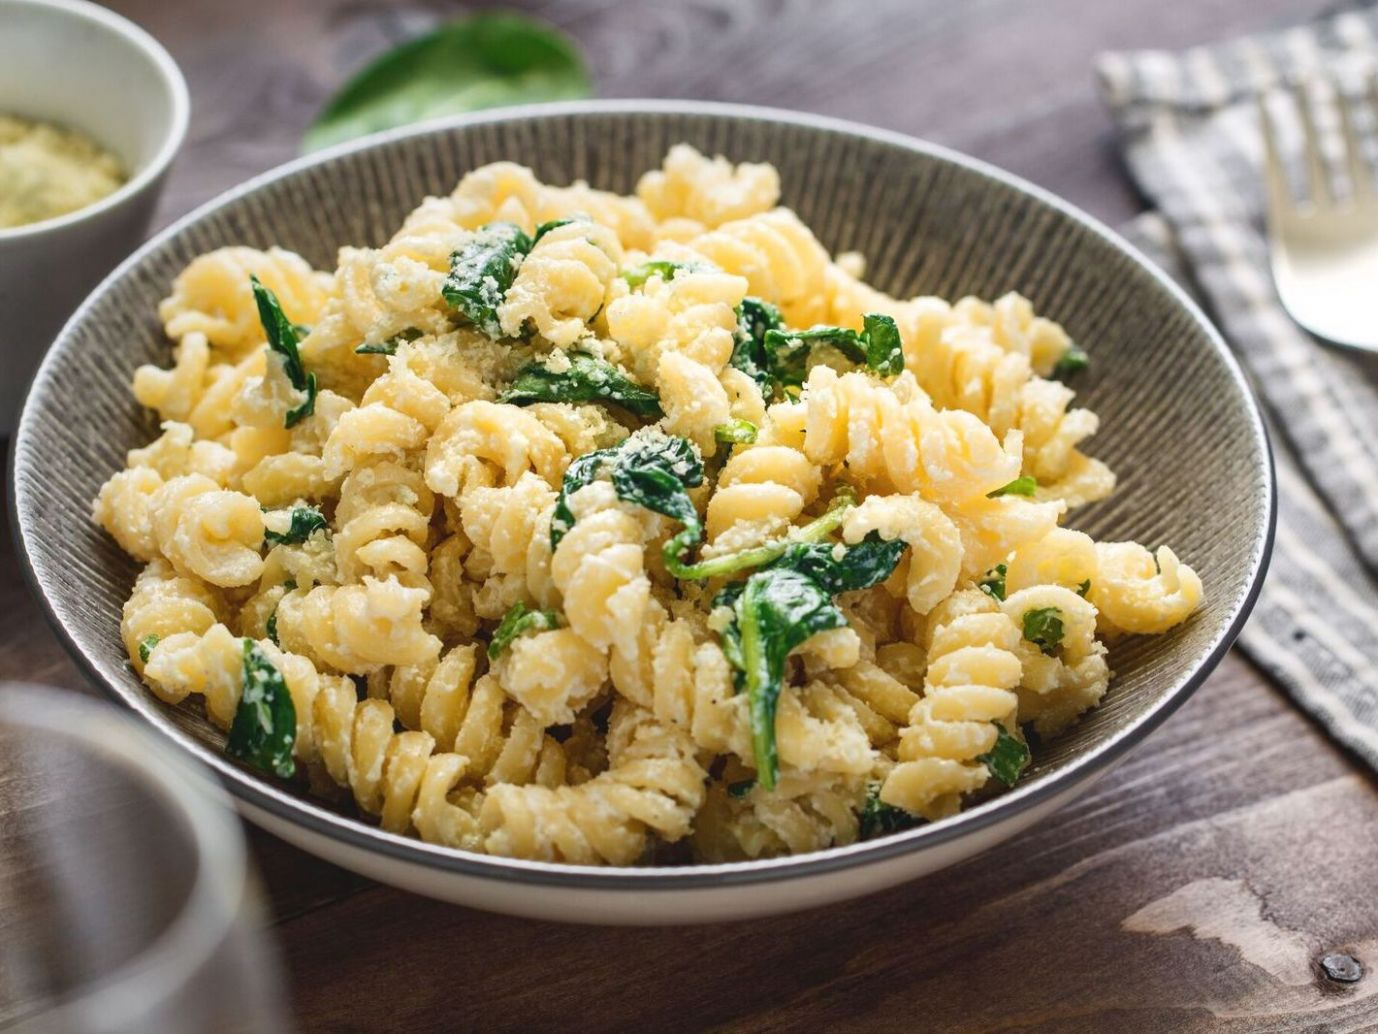 Quick and Easy Vegetarian Pasta With Spinach and Ricotta Cheese - Recipes Vegetarian Pasta